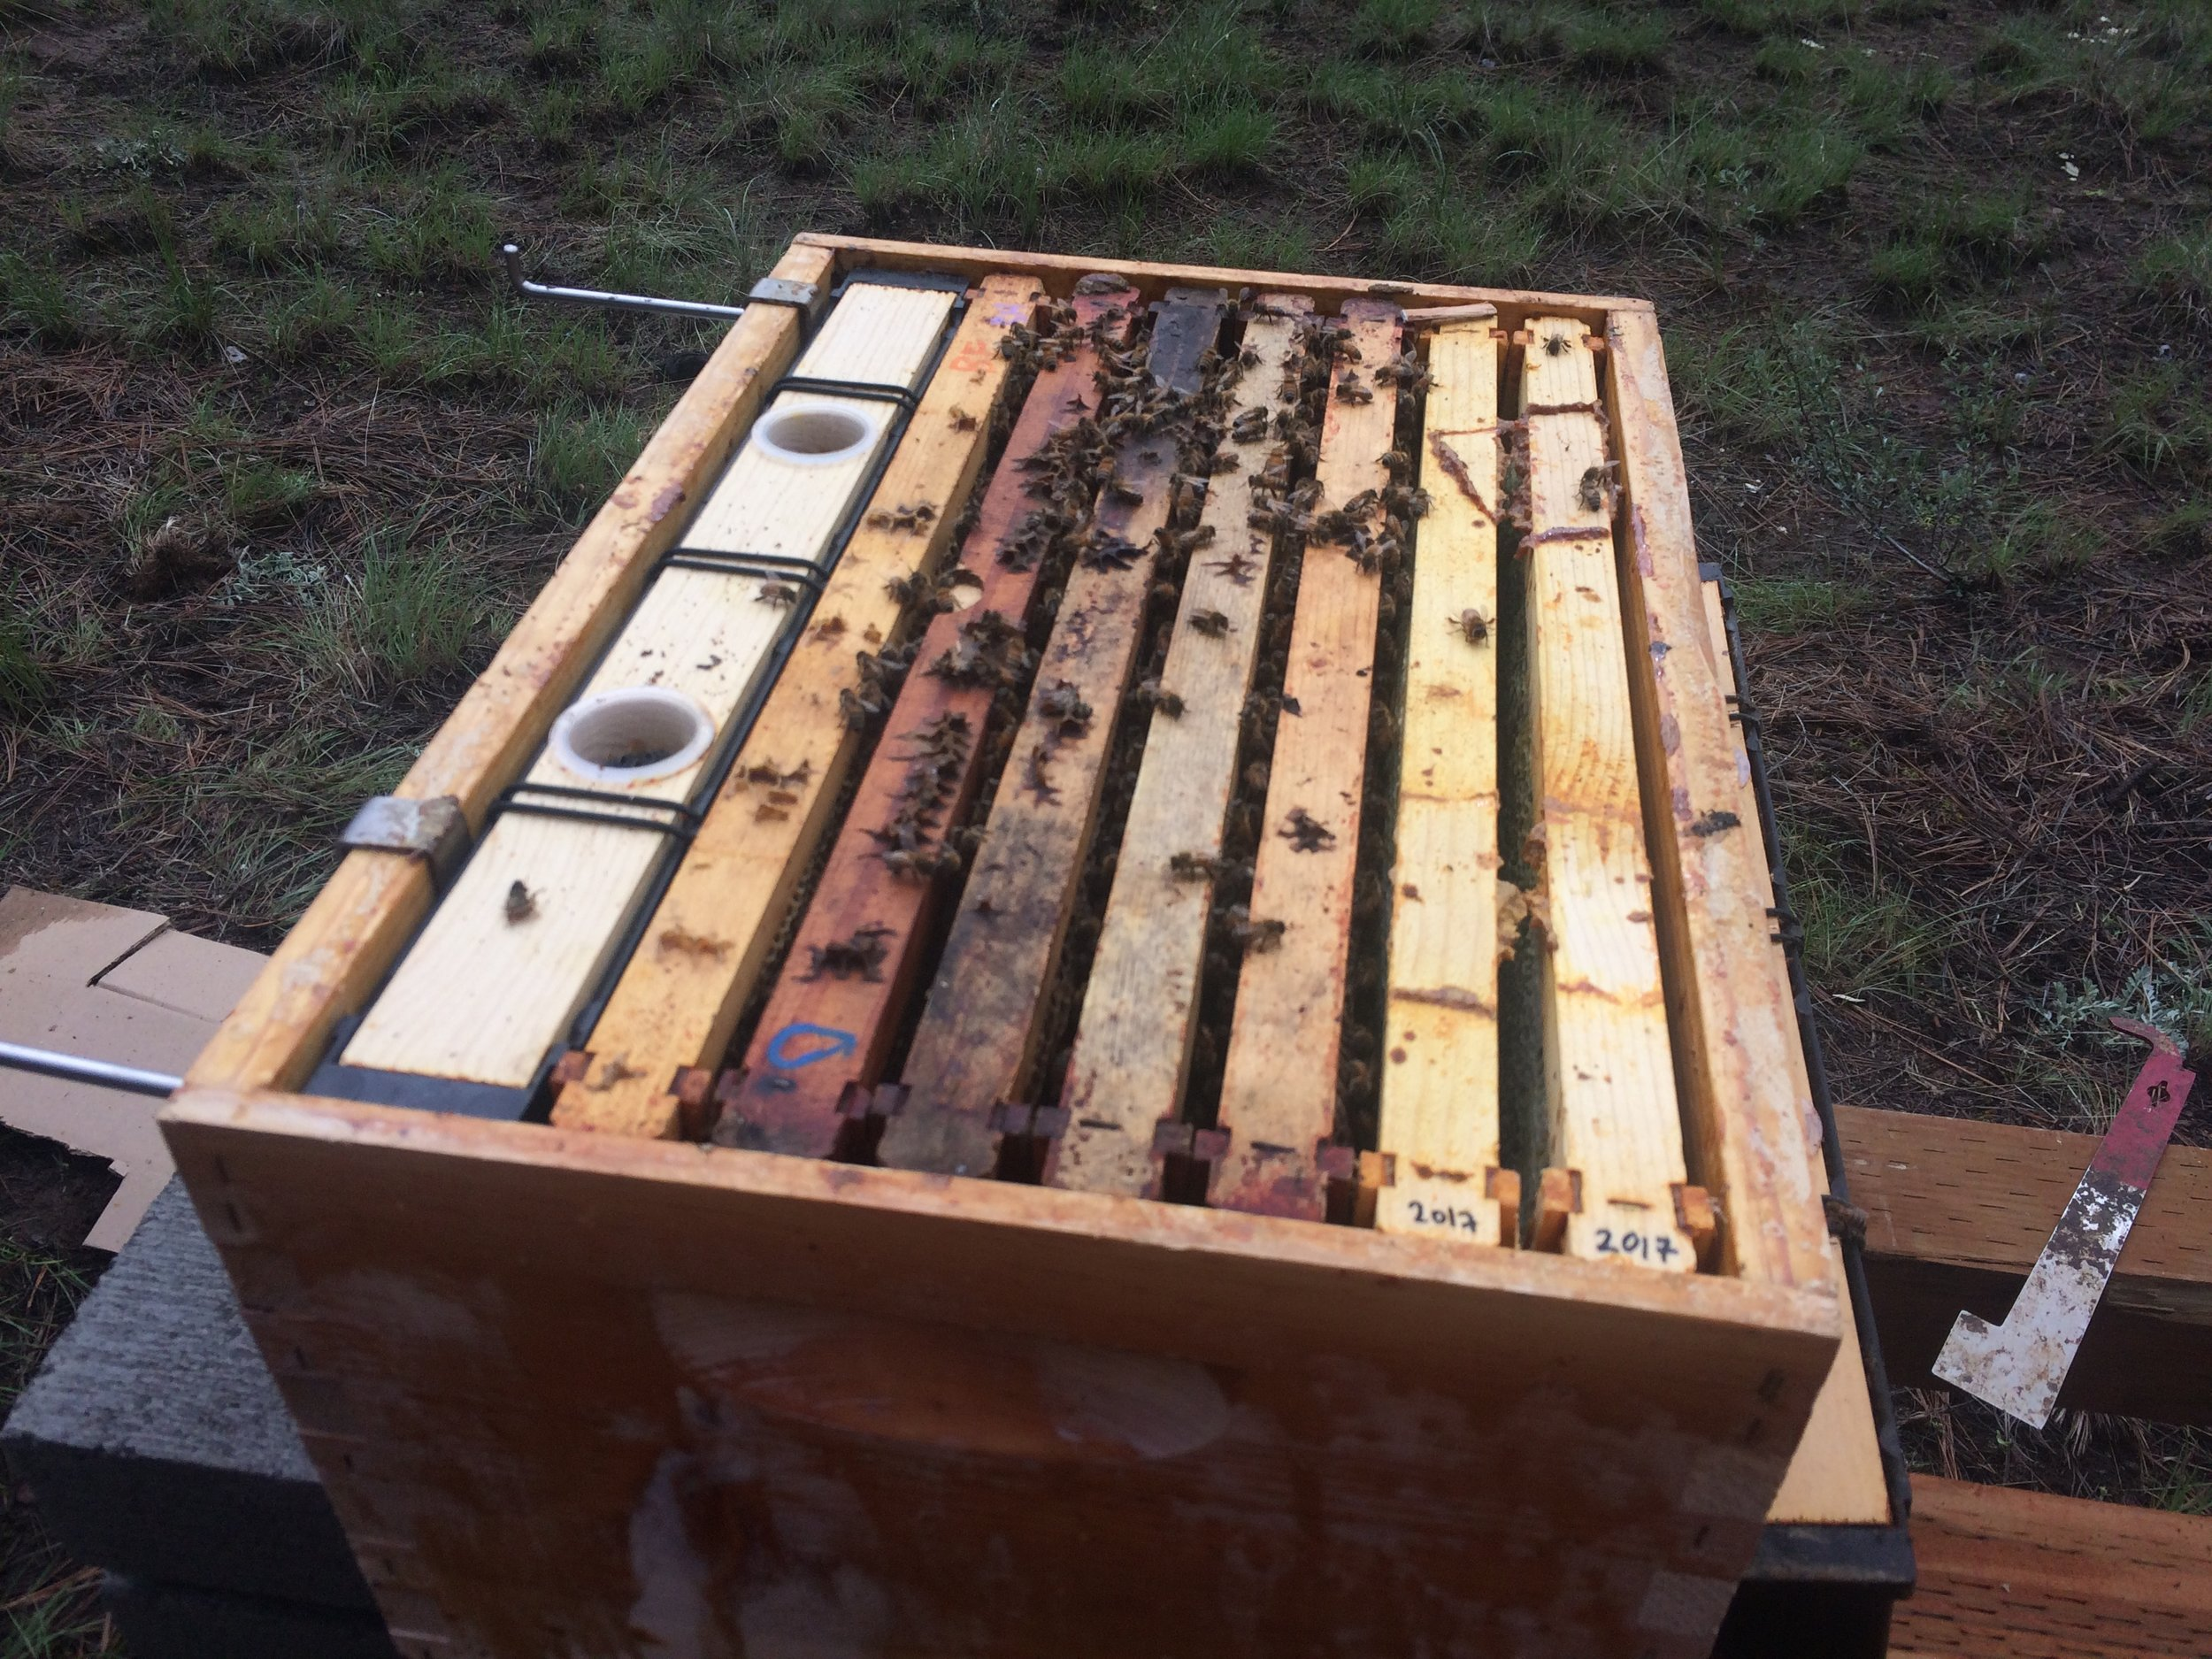 """Each nucleus hive was moved, frame by frame, into a bigger box with space for eight frames. The far left is a feeder (there is a special """"bee tea"""" inside that will help them to build up their colony), then the five original nucleus frames, then two frames that were already partially filled with resources (honey, nectar, pollen) by last year's bees."""